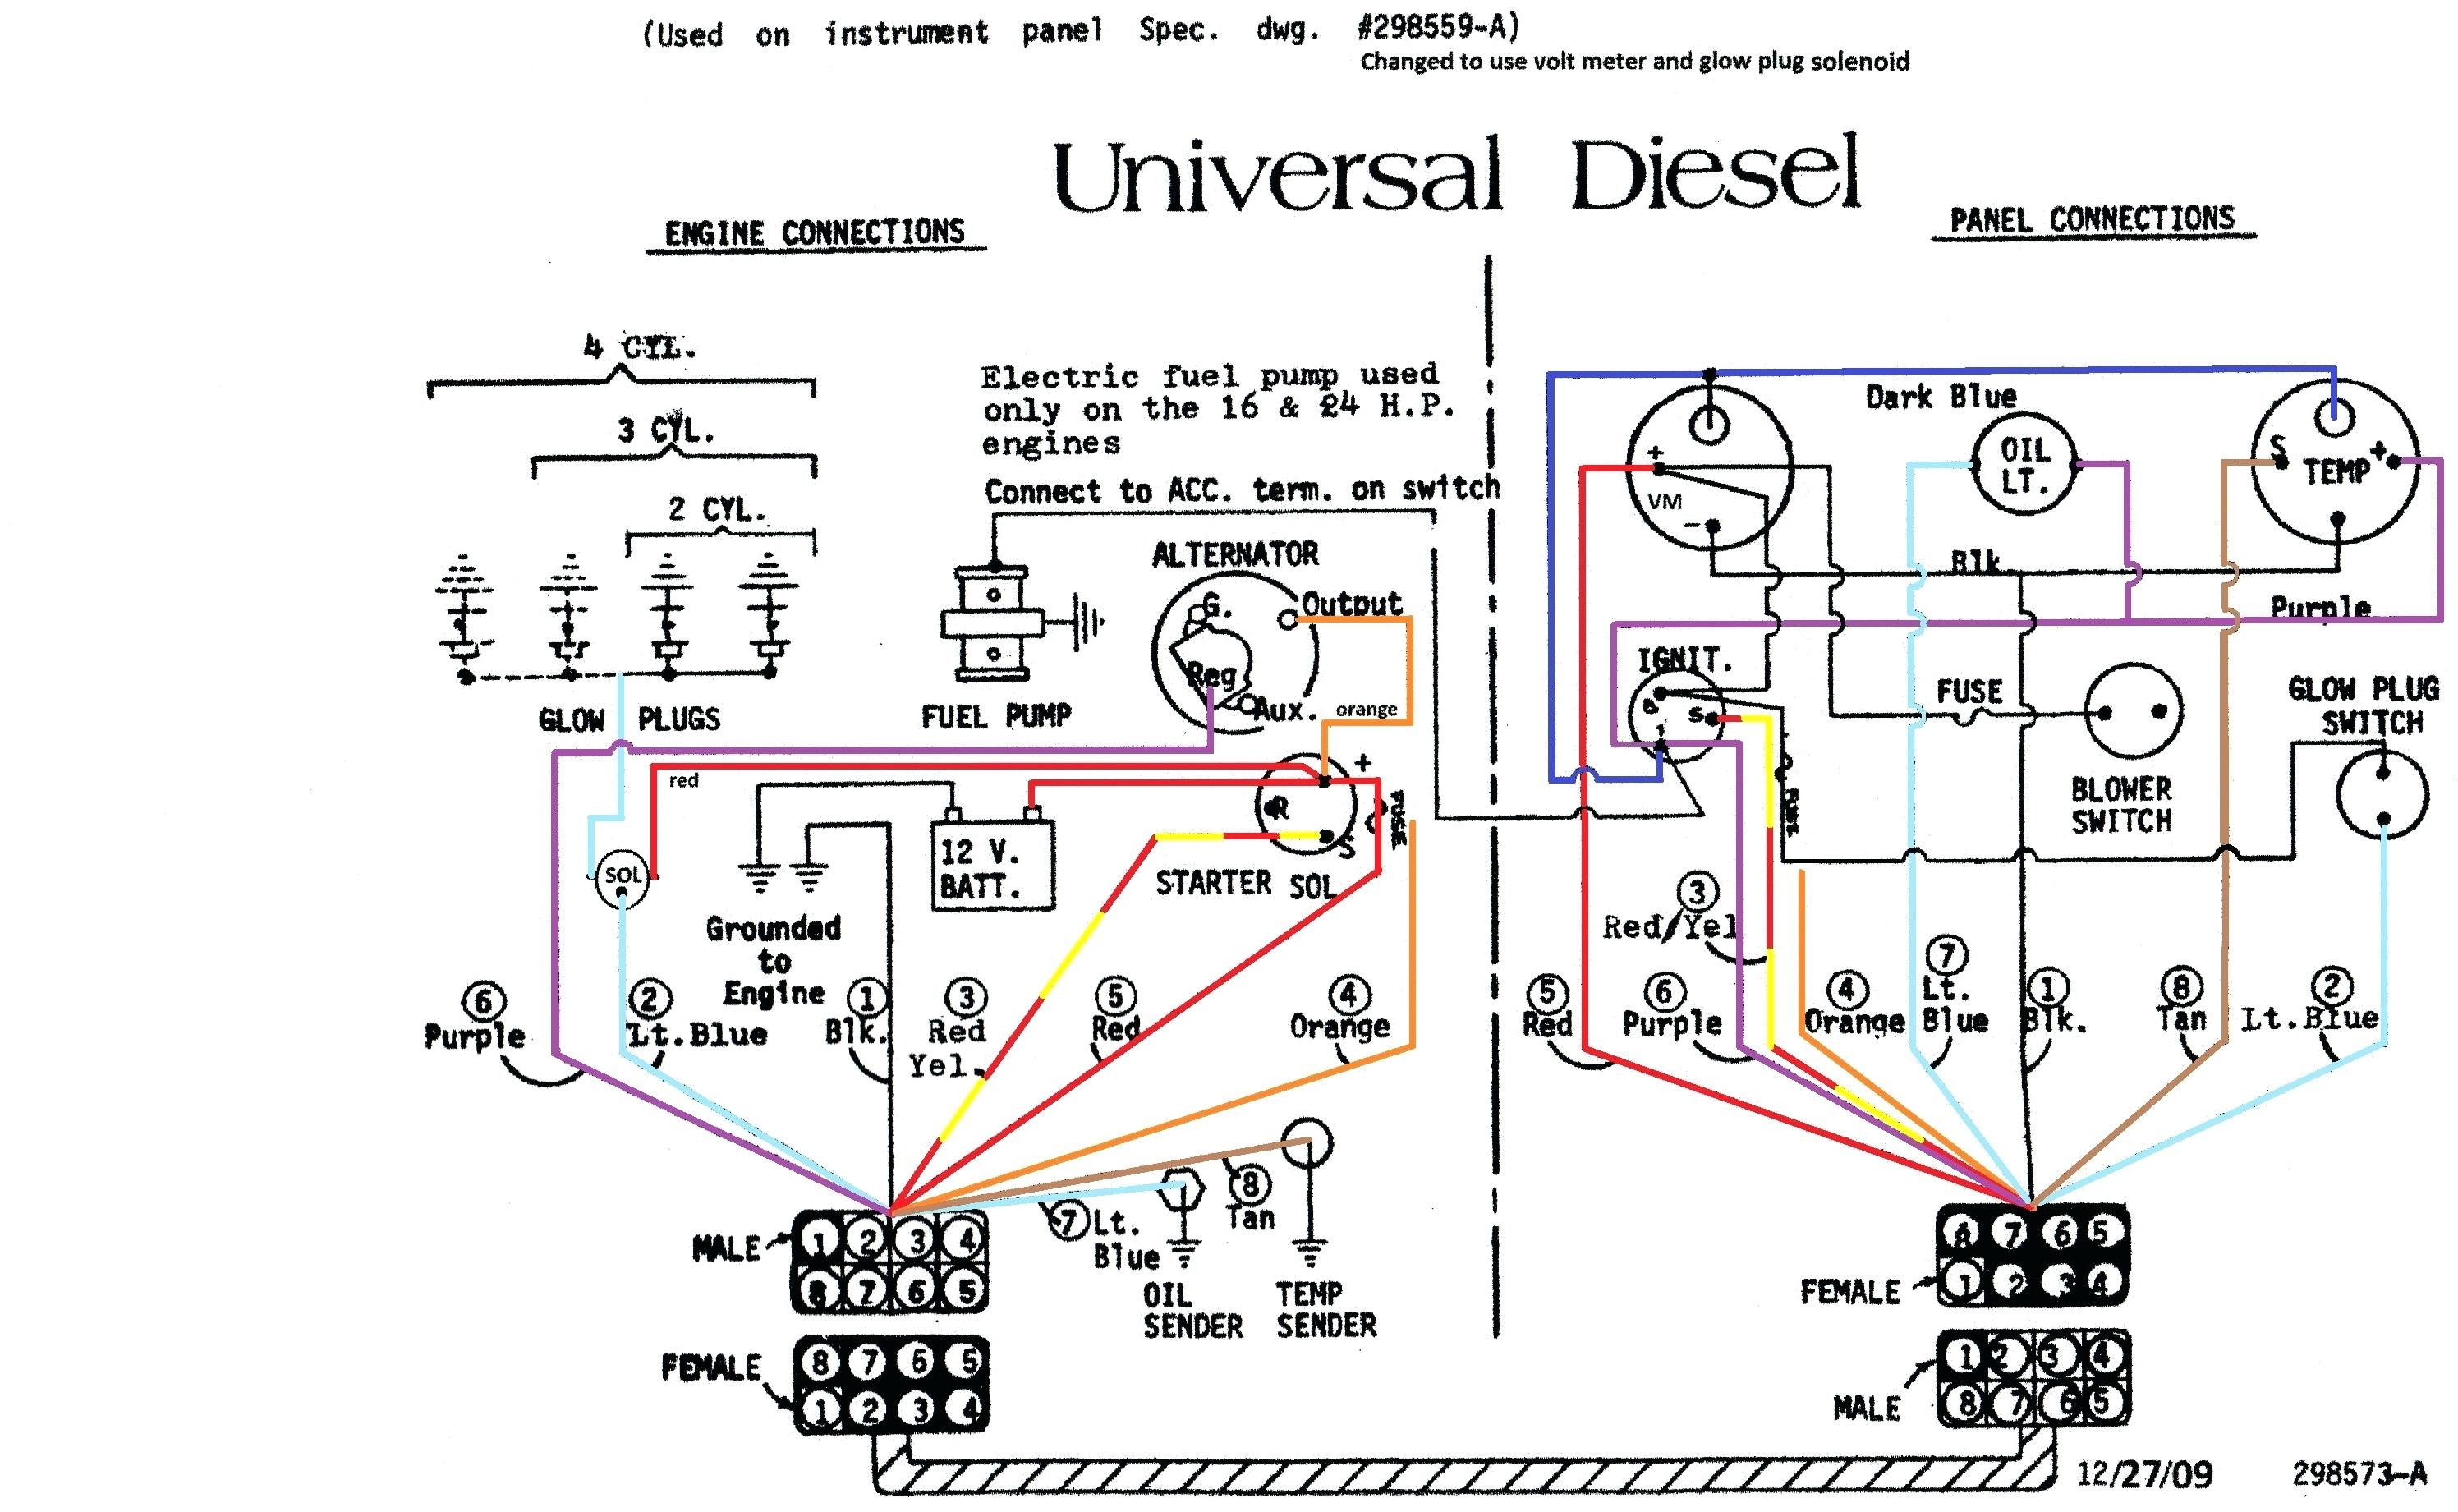 Ford 302 Alternator Wiring Diagram from static-cdn.imageservice.cloud